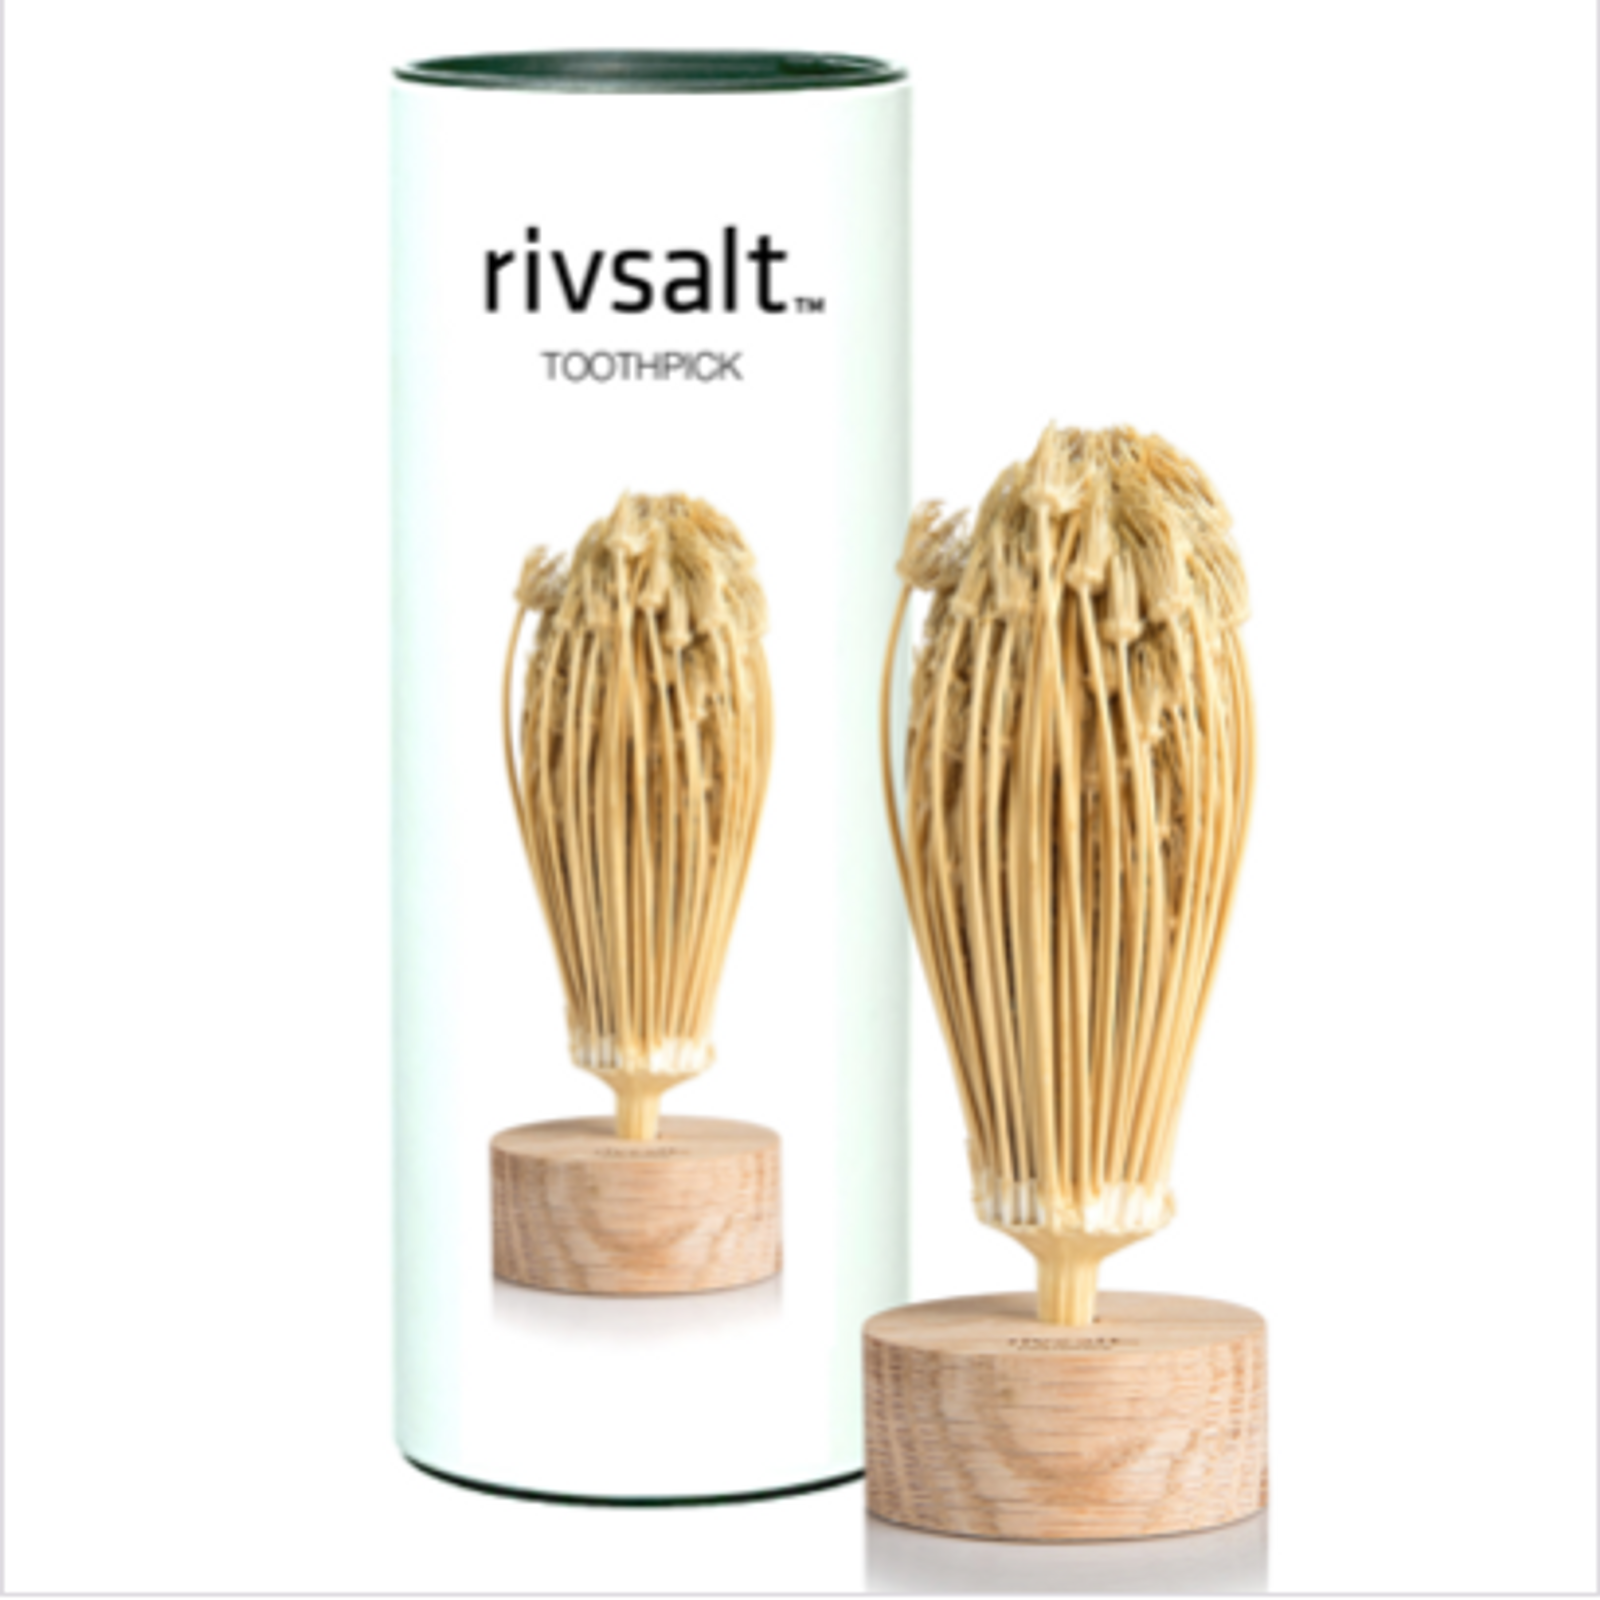 Rivsalt Toothpick with oak stand